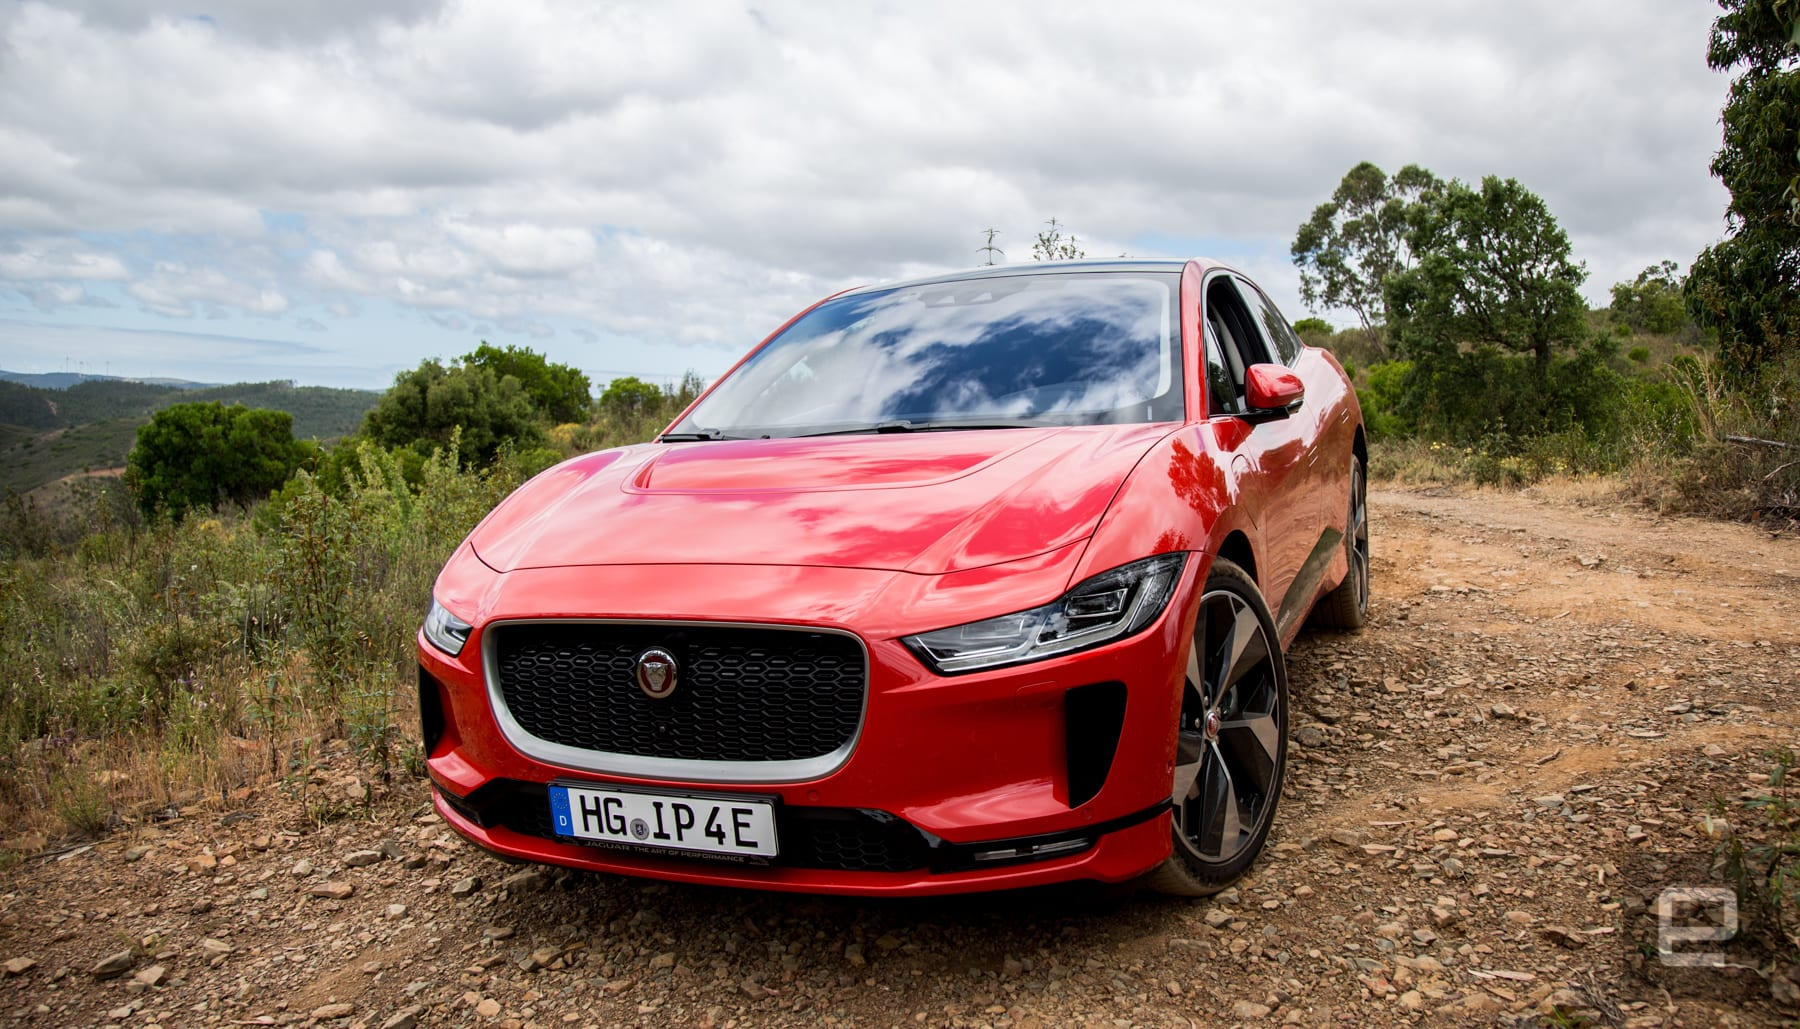 Jaguar's electric I-Pace takes the World Car of the Year award